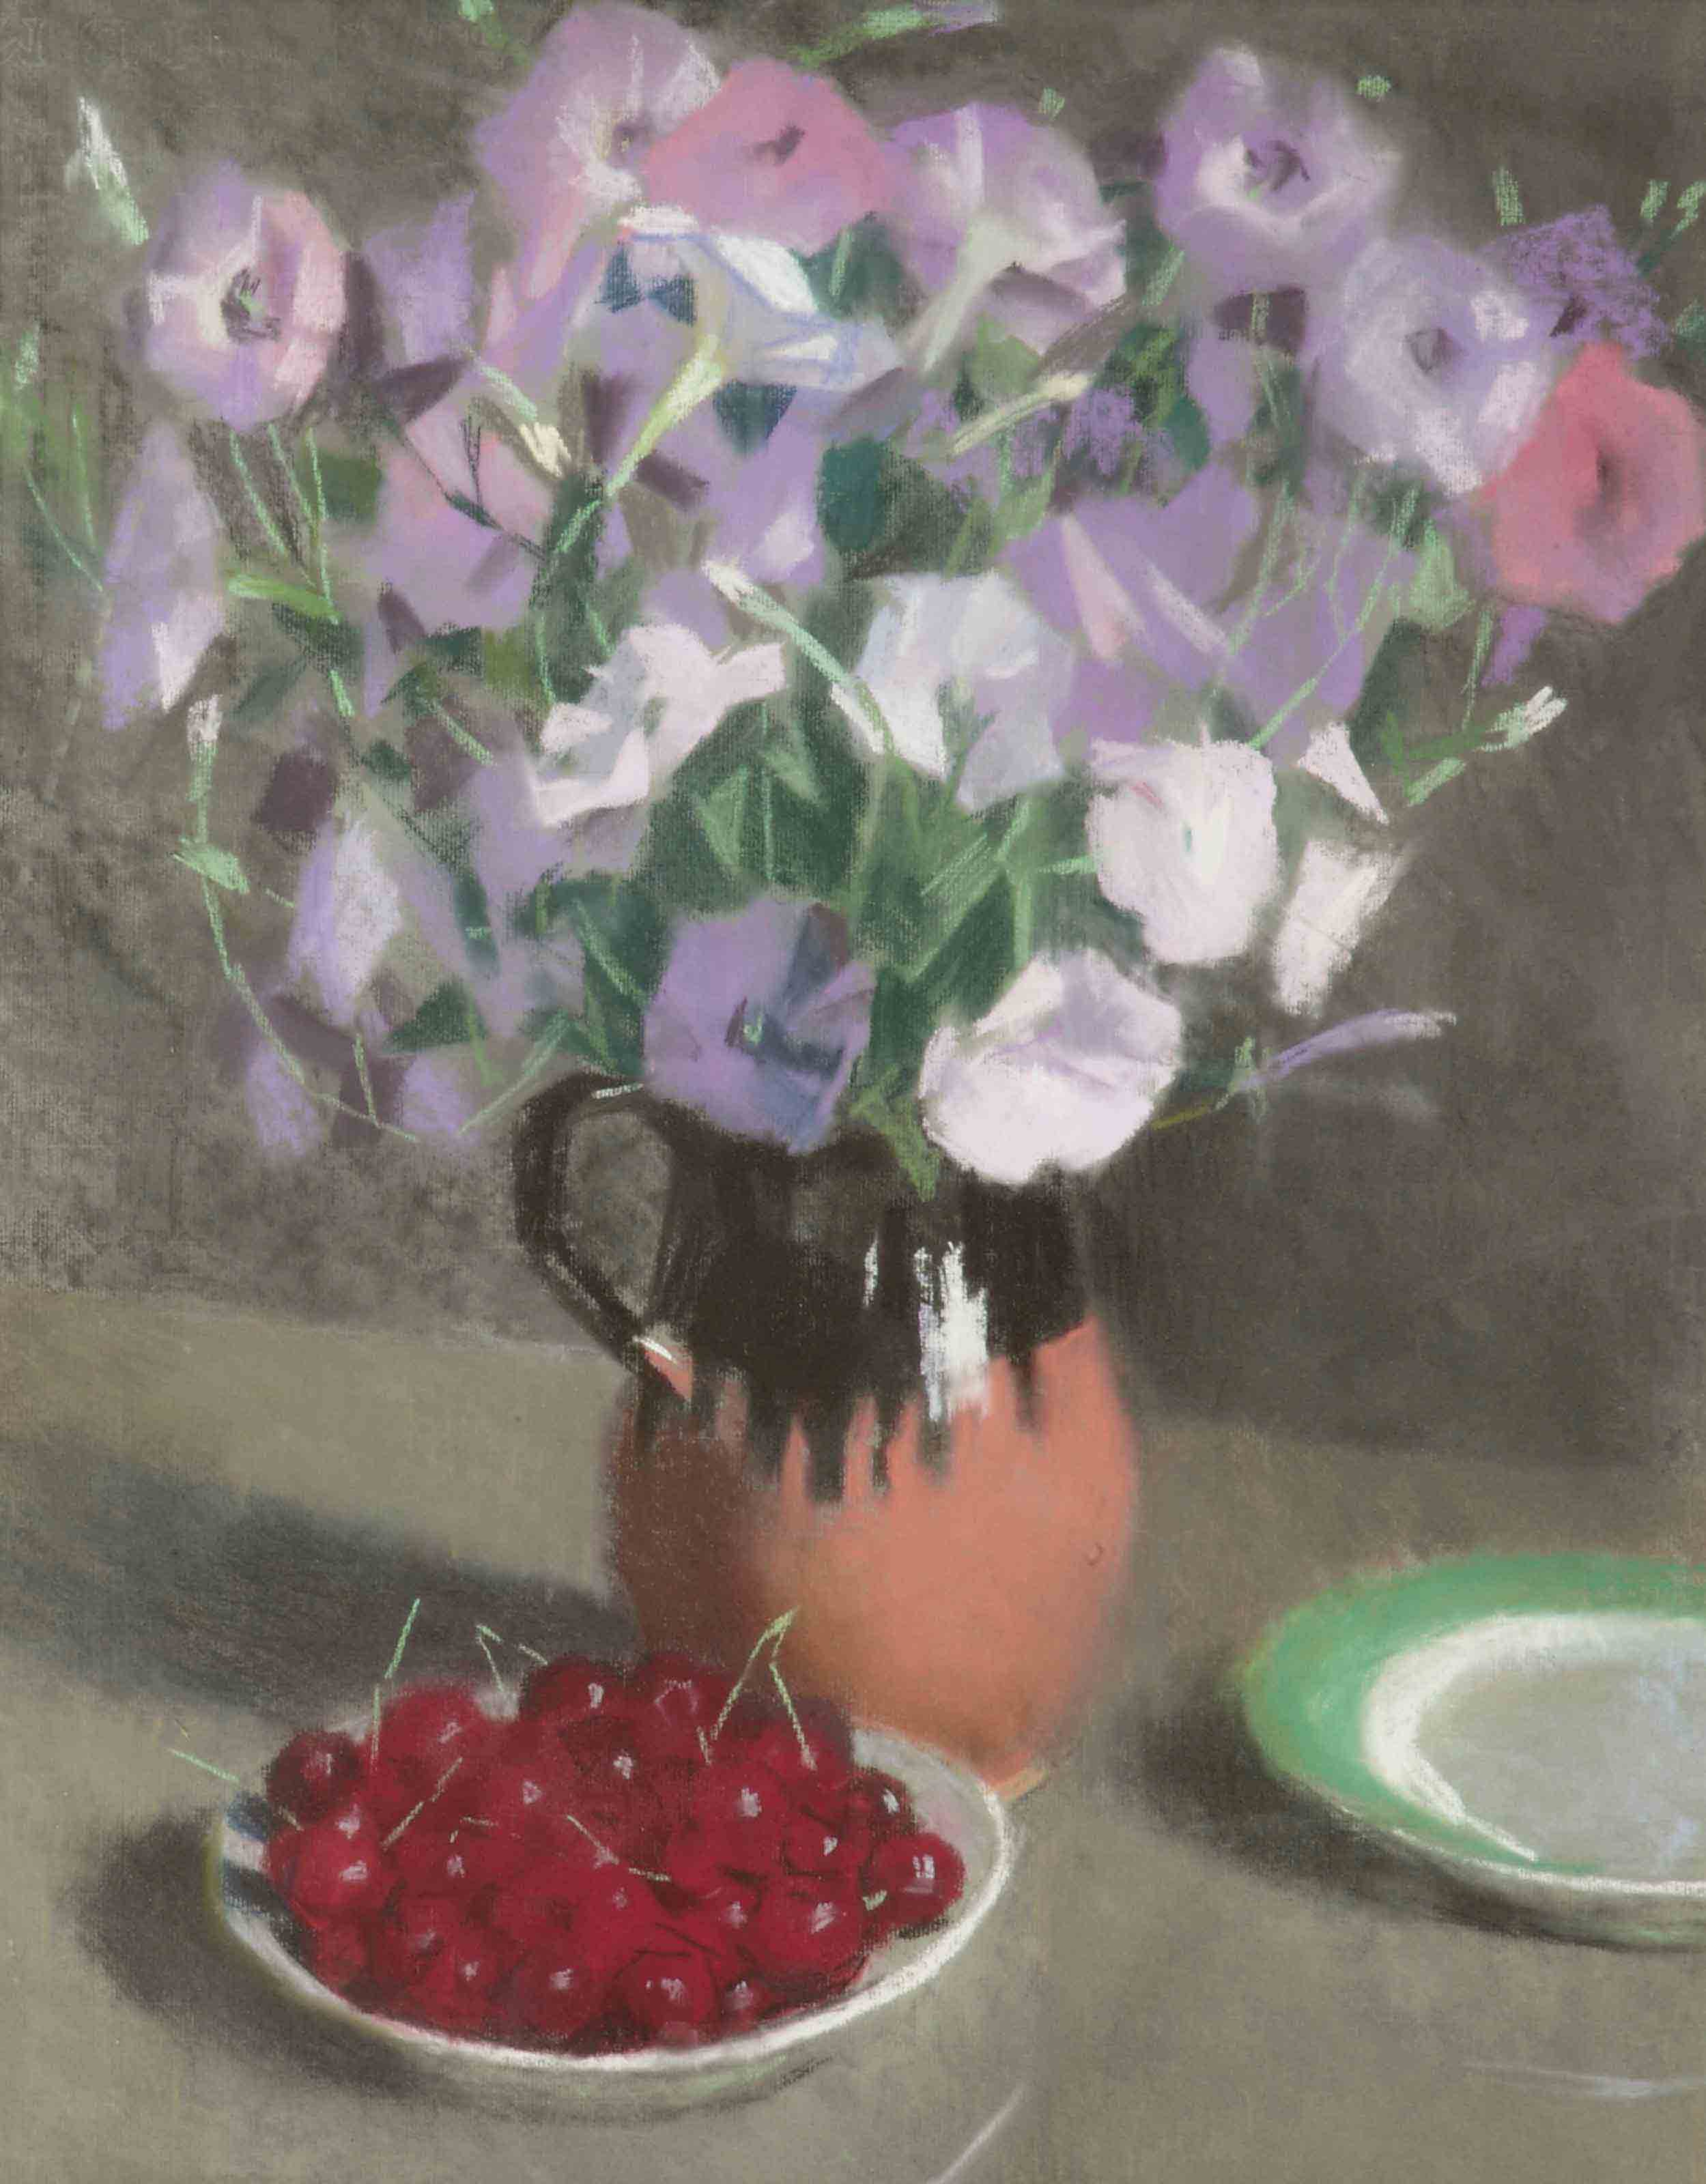 A still life with cherries and purple flowers